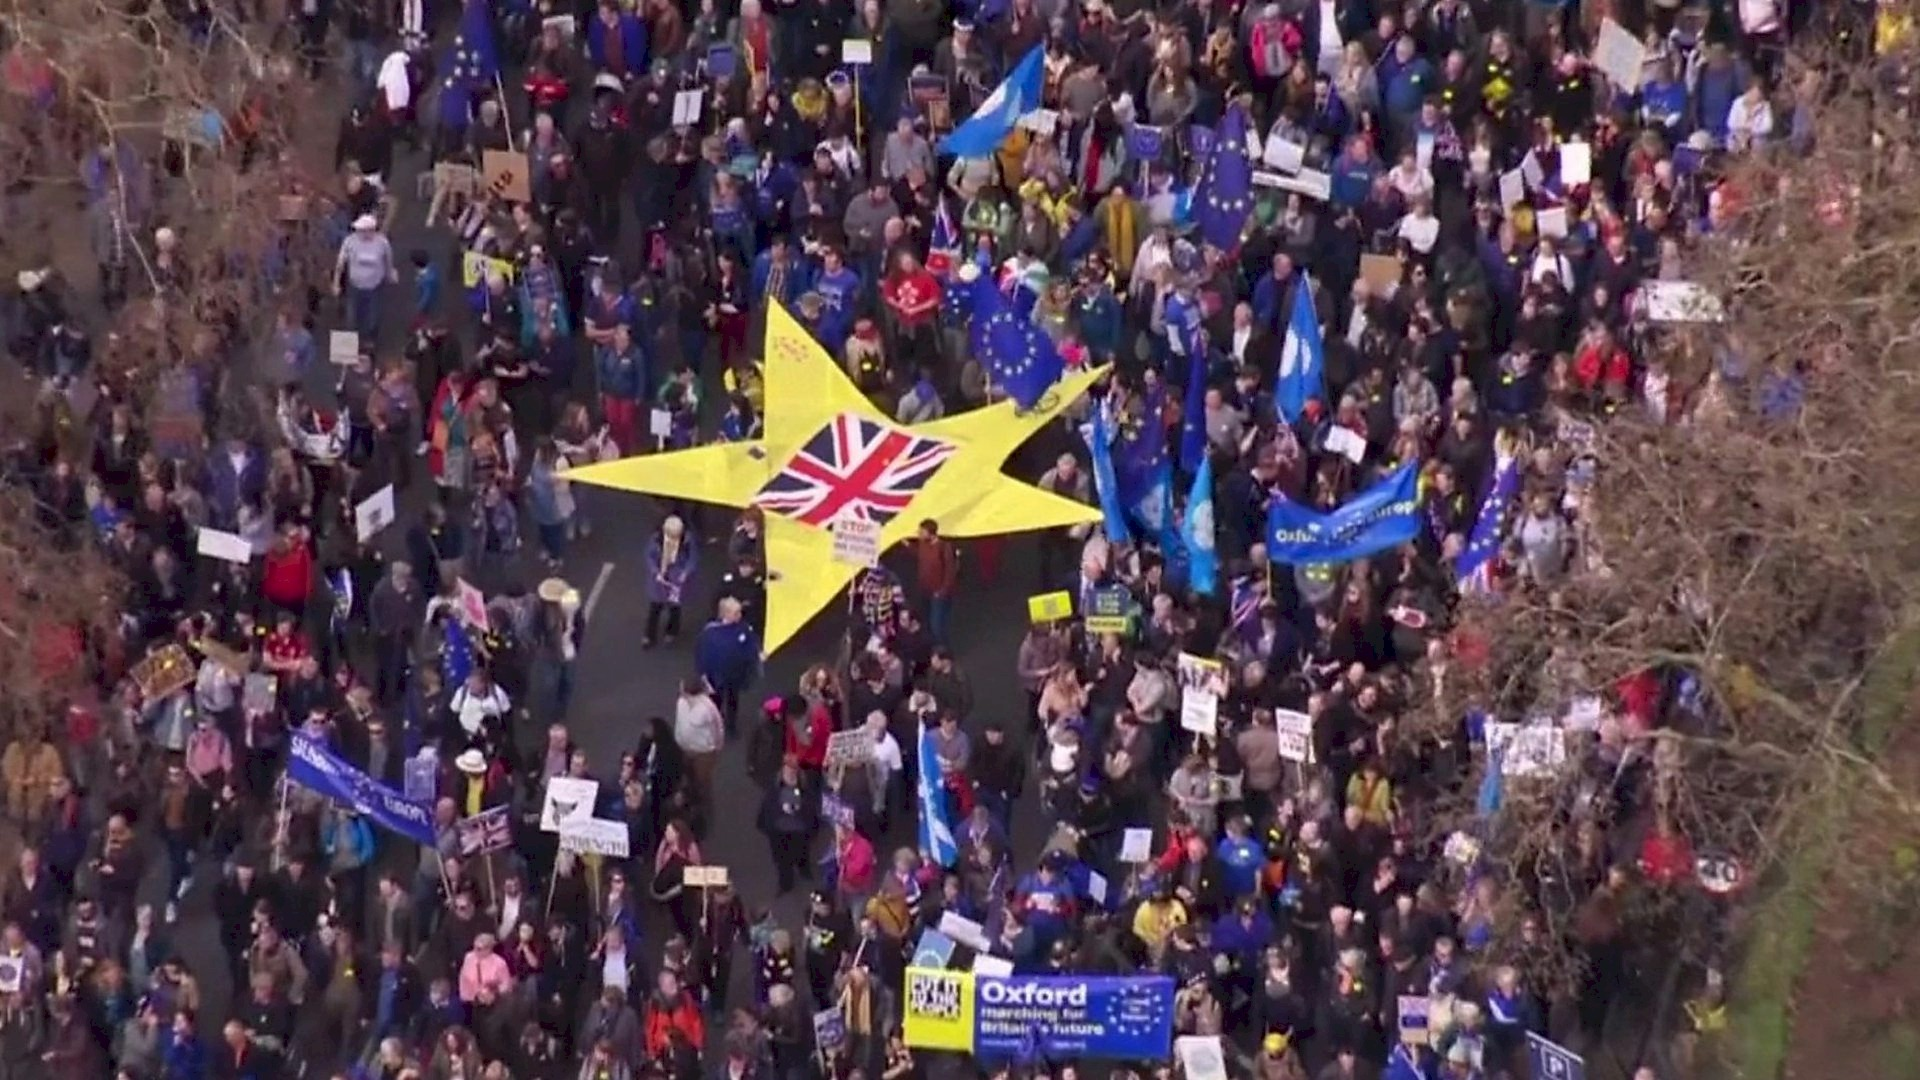 Brexit second vote demanded by 4 million on petition and uncounted tens of thousands as numbers in the streets grow.